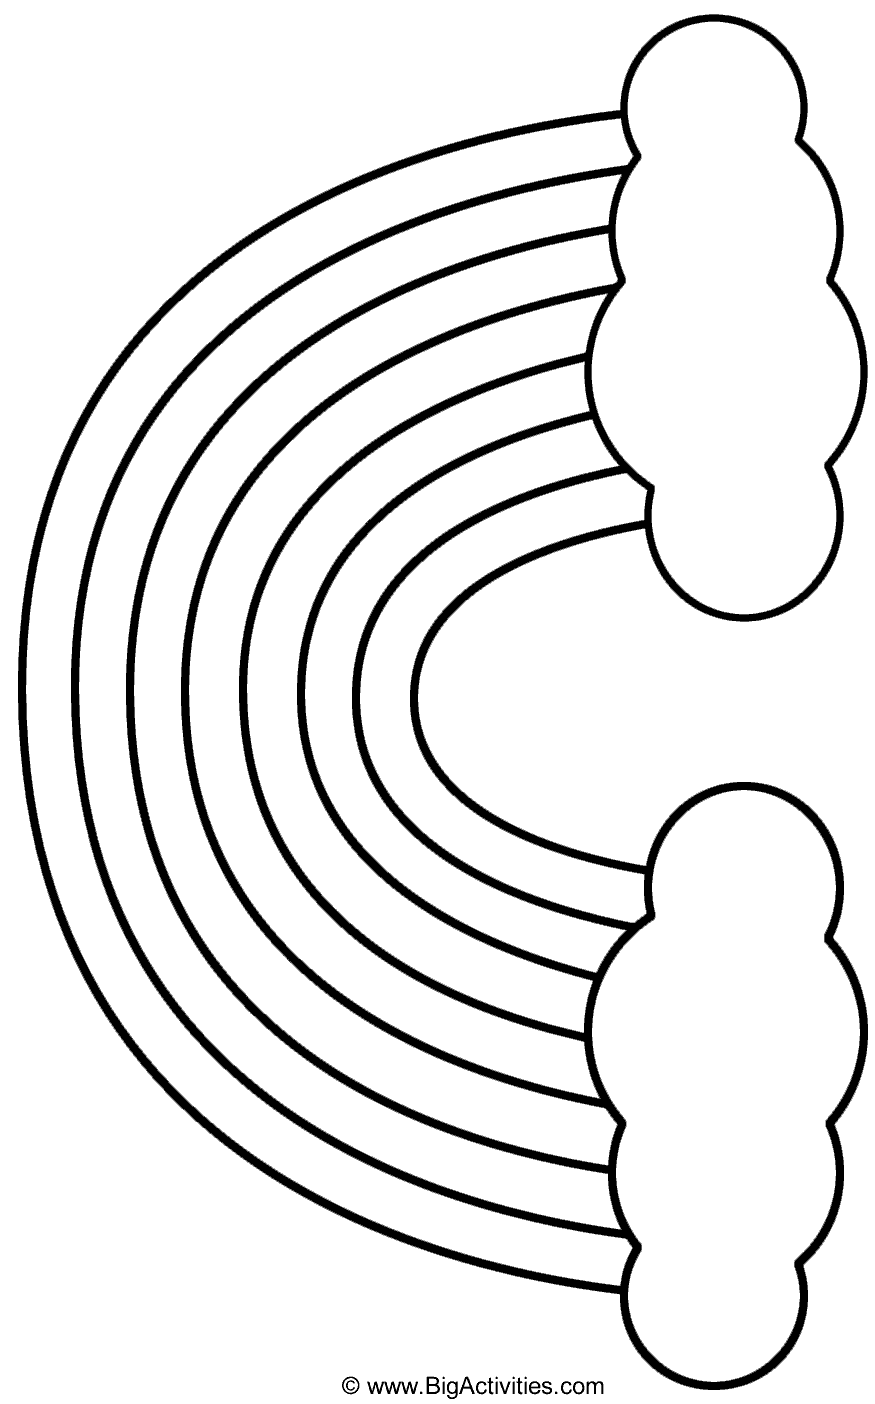 coloring picture of rainbow a simple drawing of rainbow behind the cloud coloring page of coloring picture rainbow